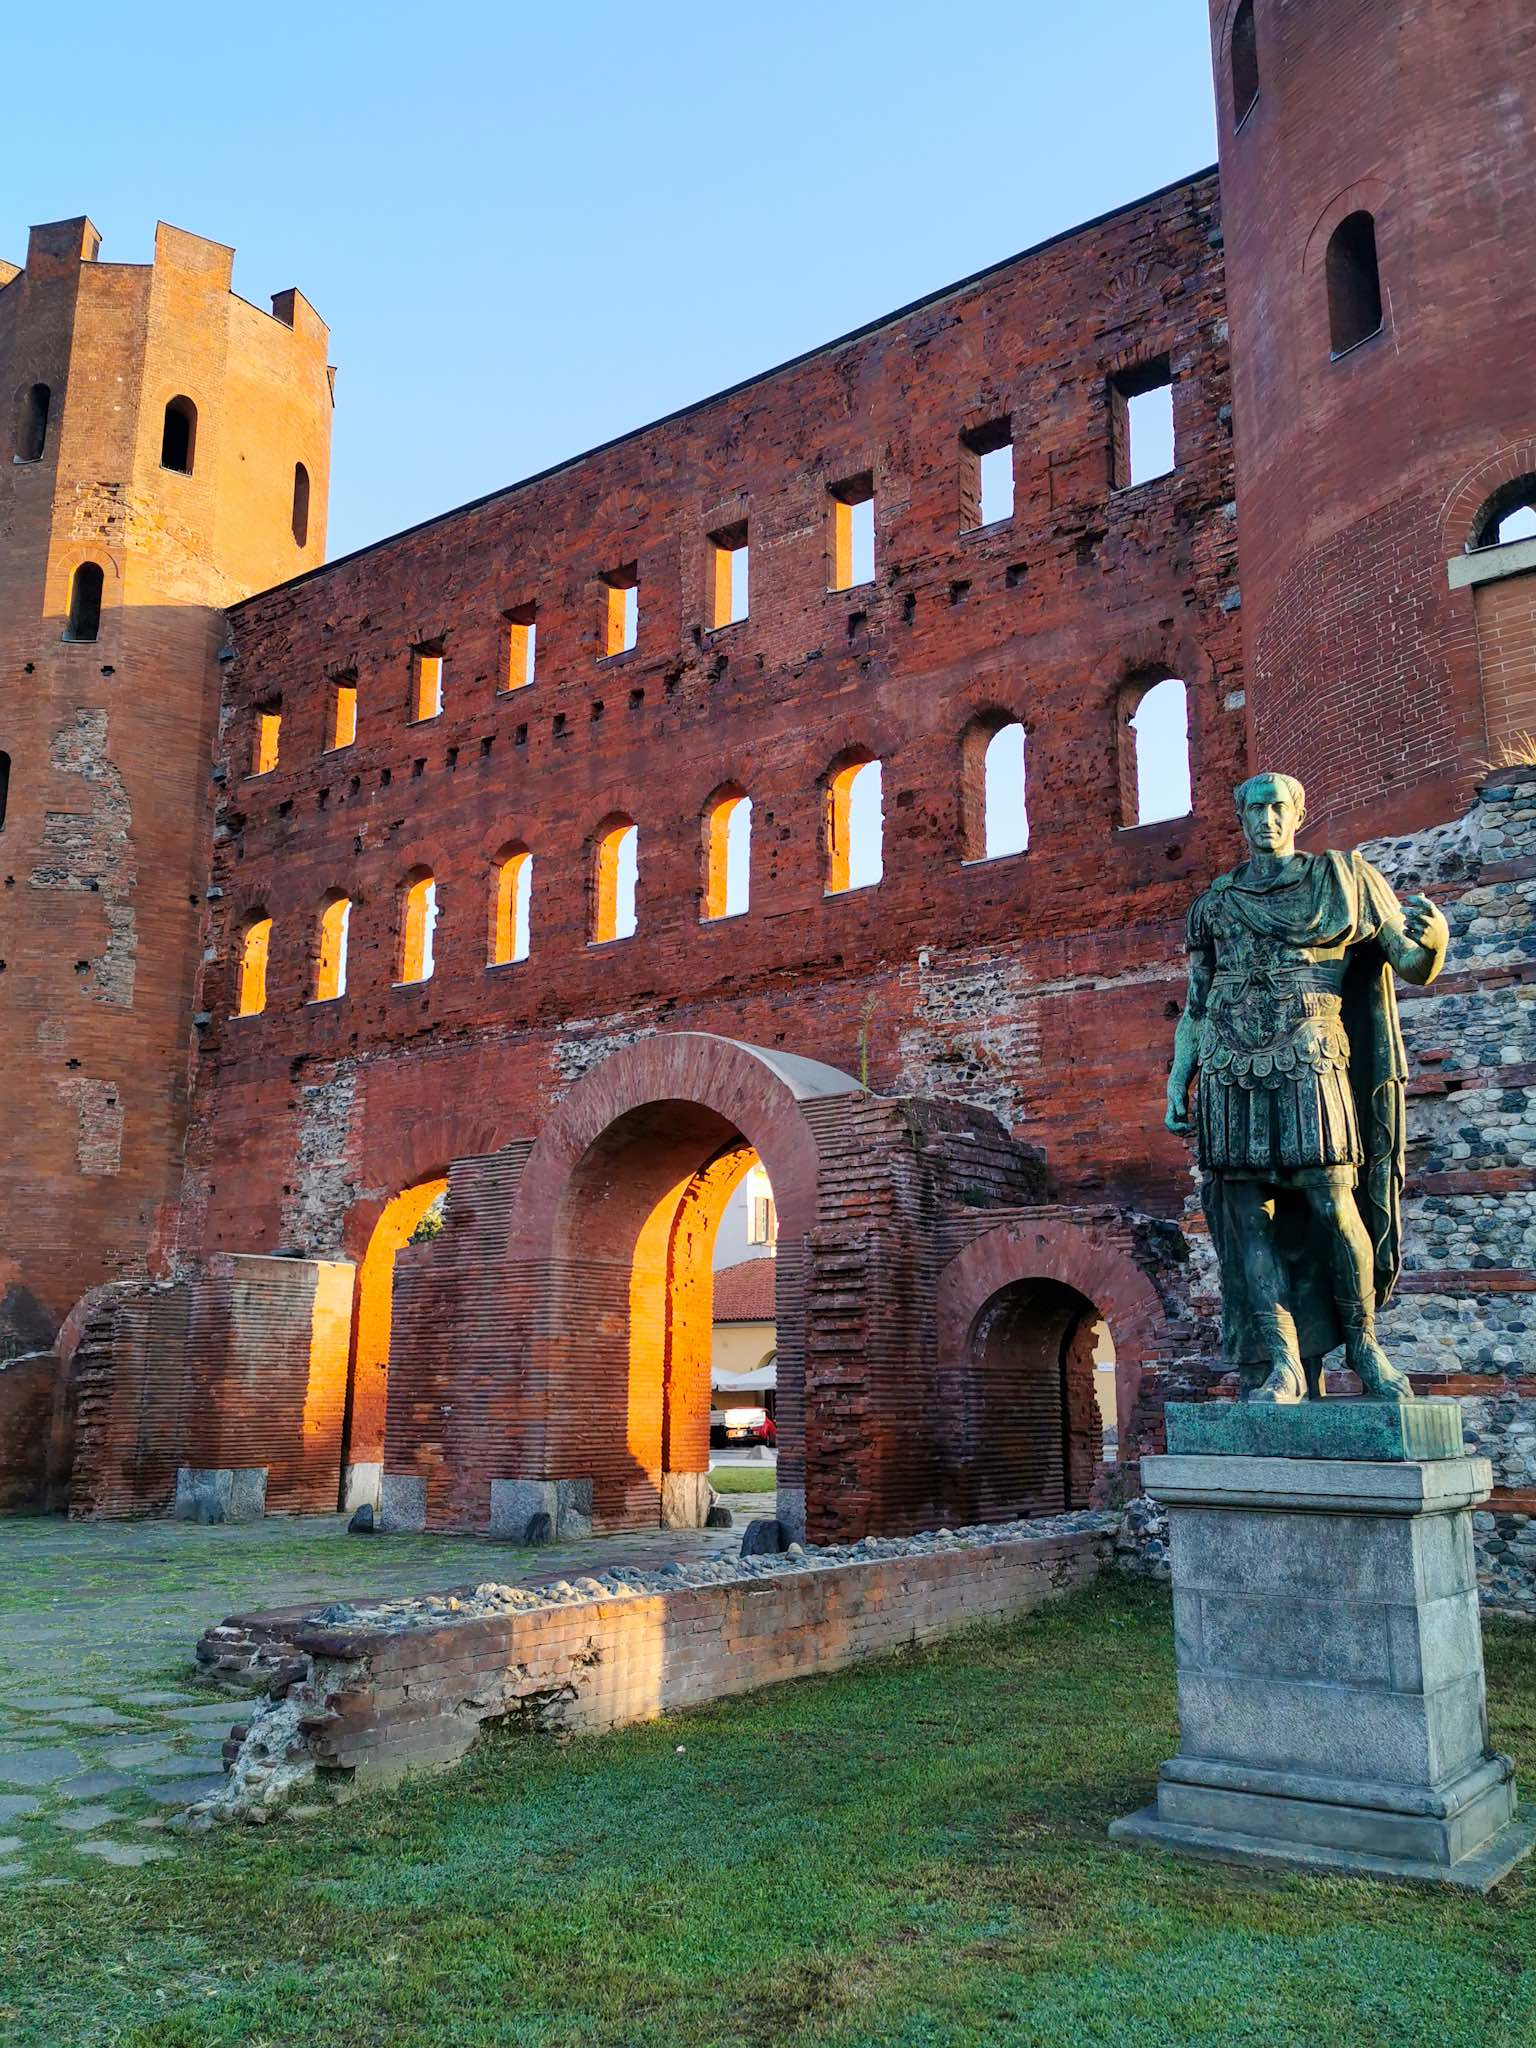 Turin's Porta Palatina, a beautifully preserved red-brick Roman gate guarded by thestatues of Augustus and Caesar